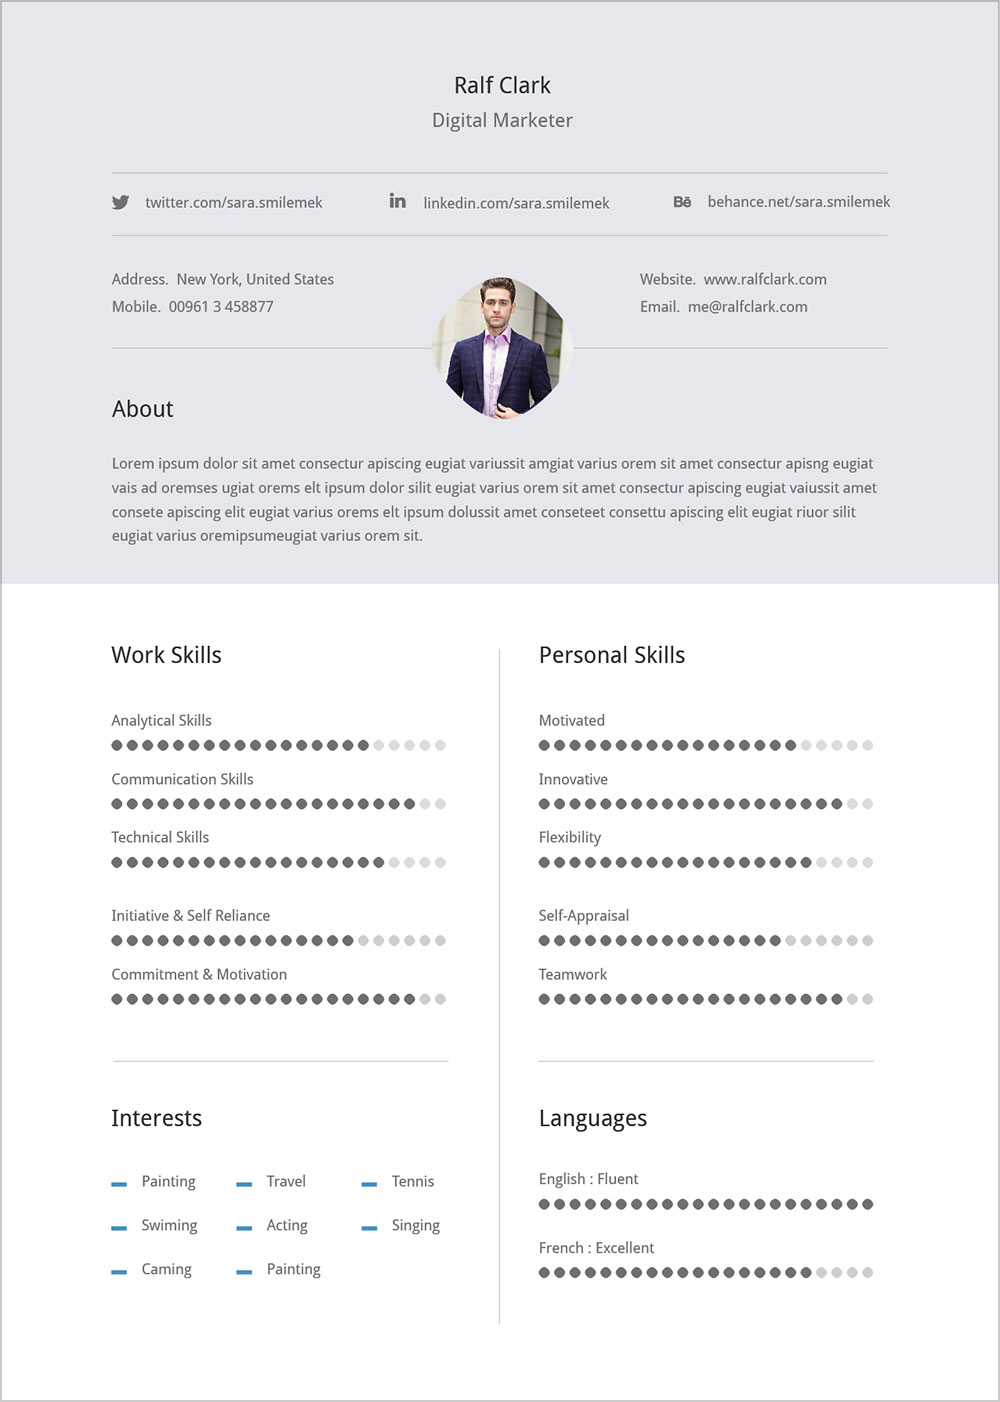 Free-Professional-Resume-&-Cover-Letter--in-Illustrator-Ai-Format-02